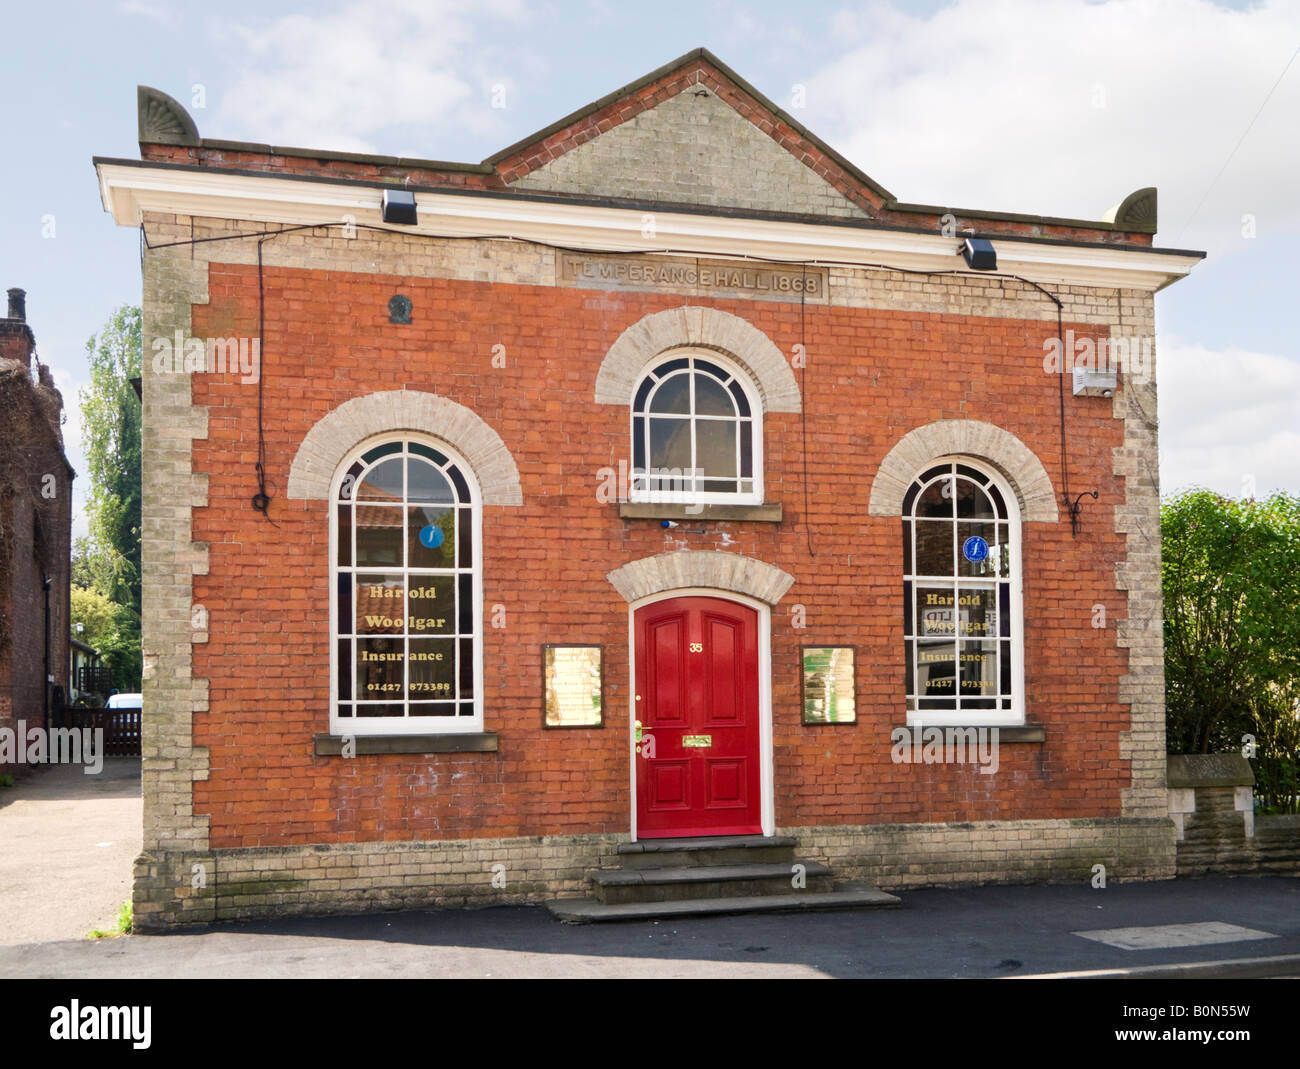 The 1868 Temperance Hall in Epworth, North Lincolnshire, UK - Stock Image